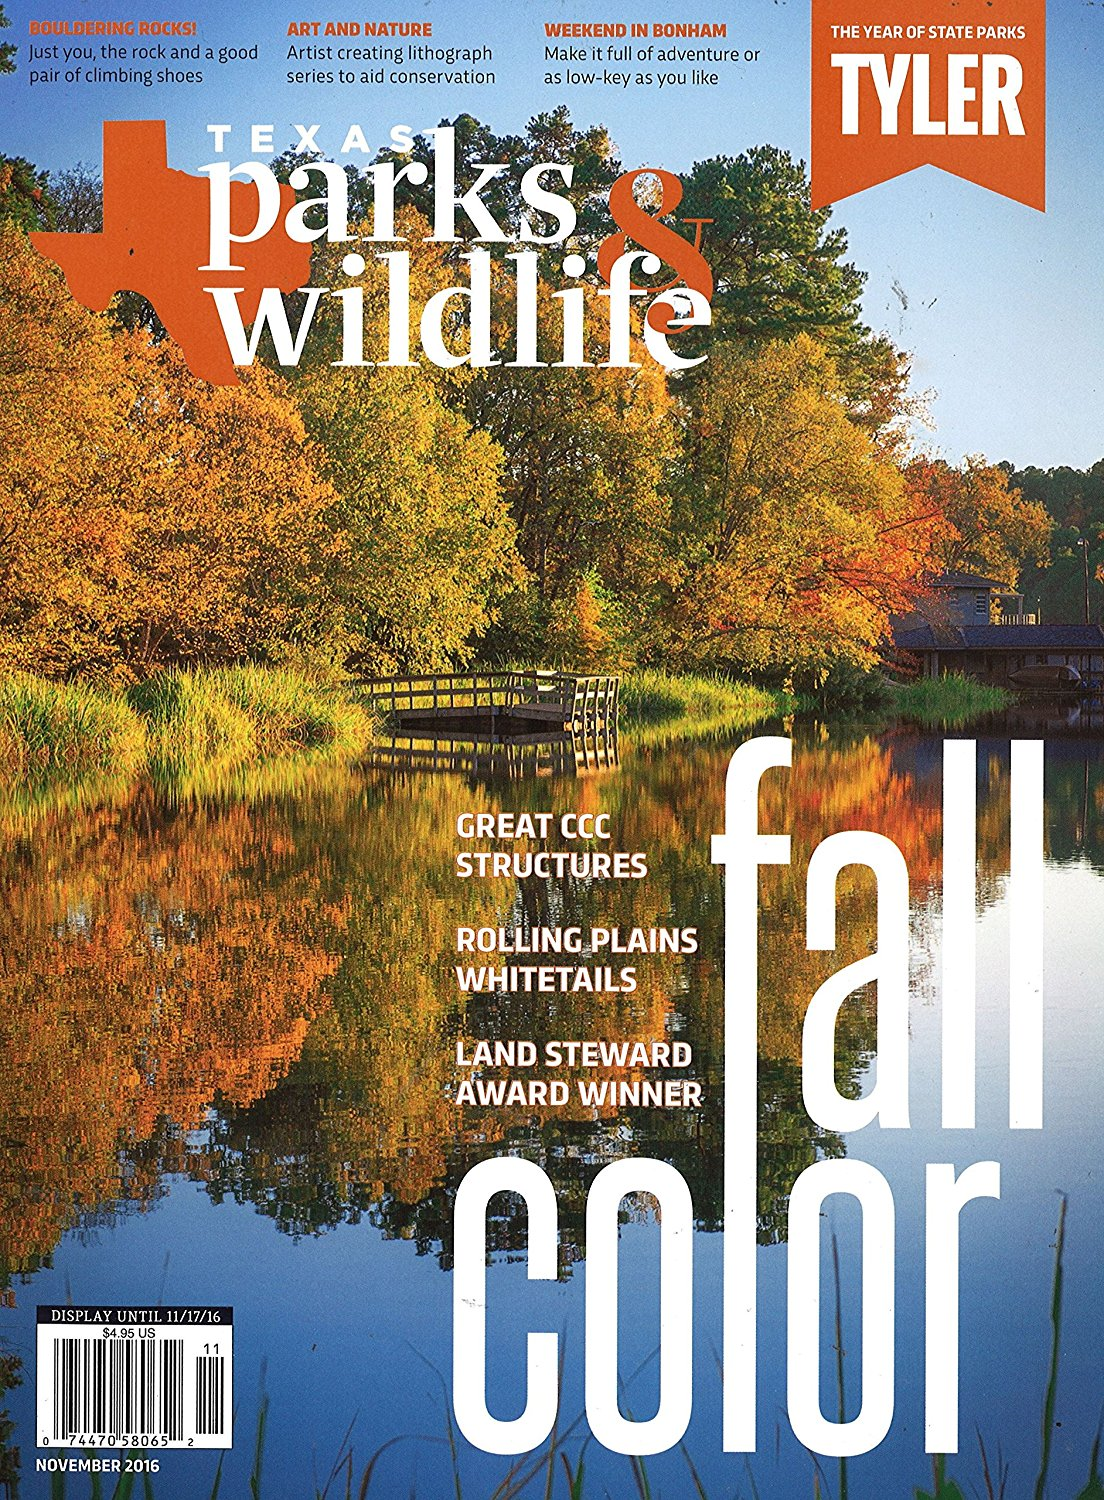 Texas Parks Wildlife Magazine Subscription